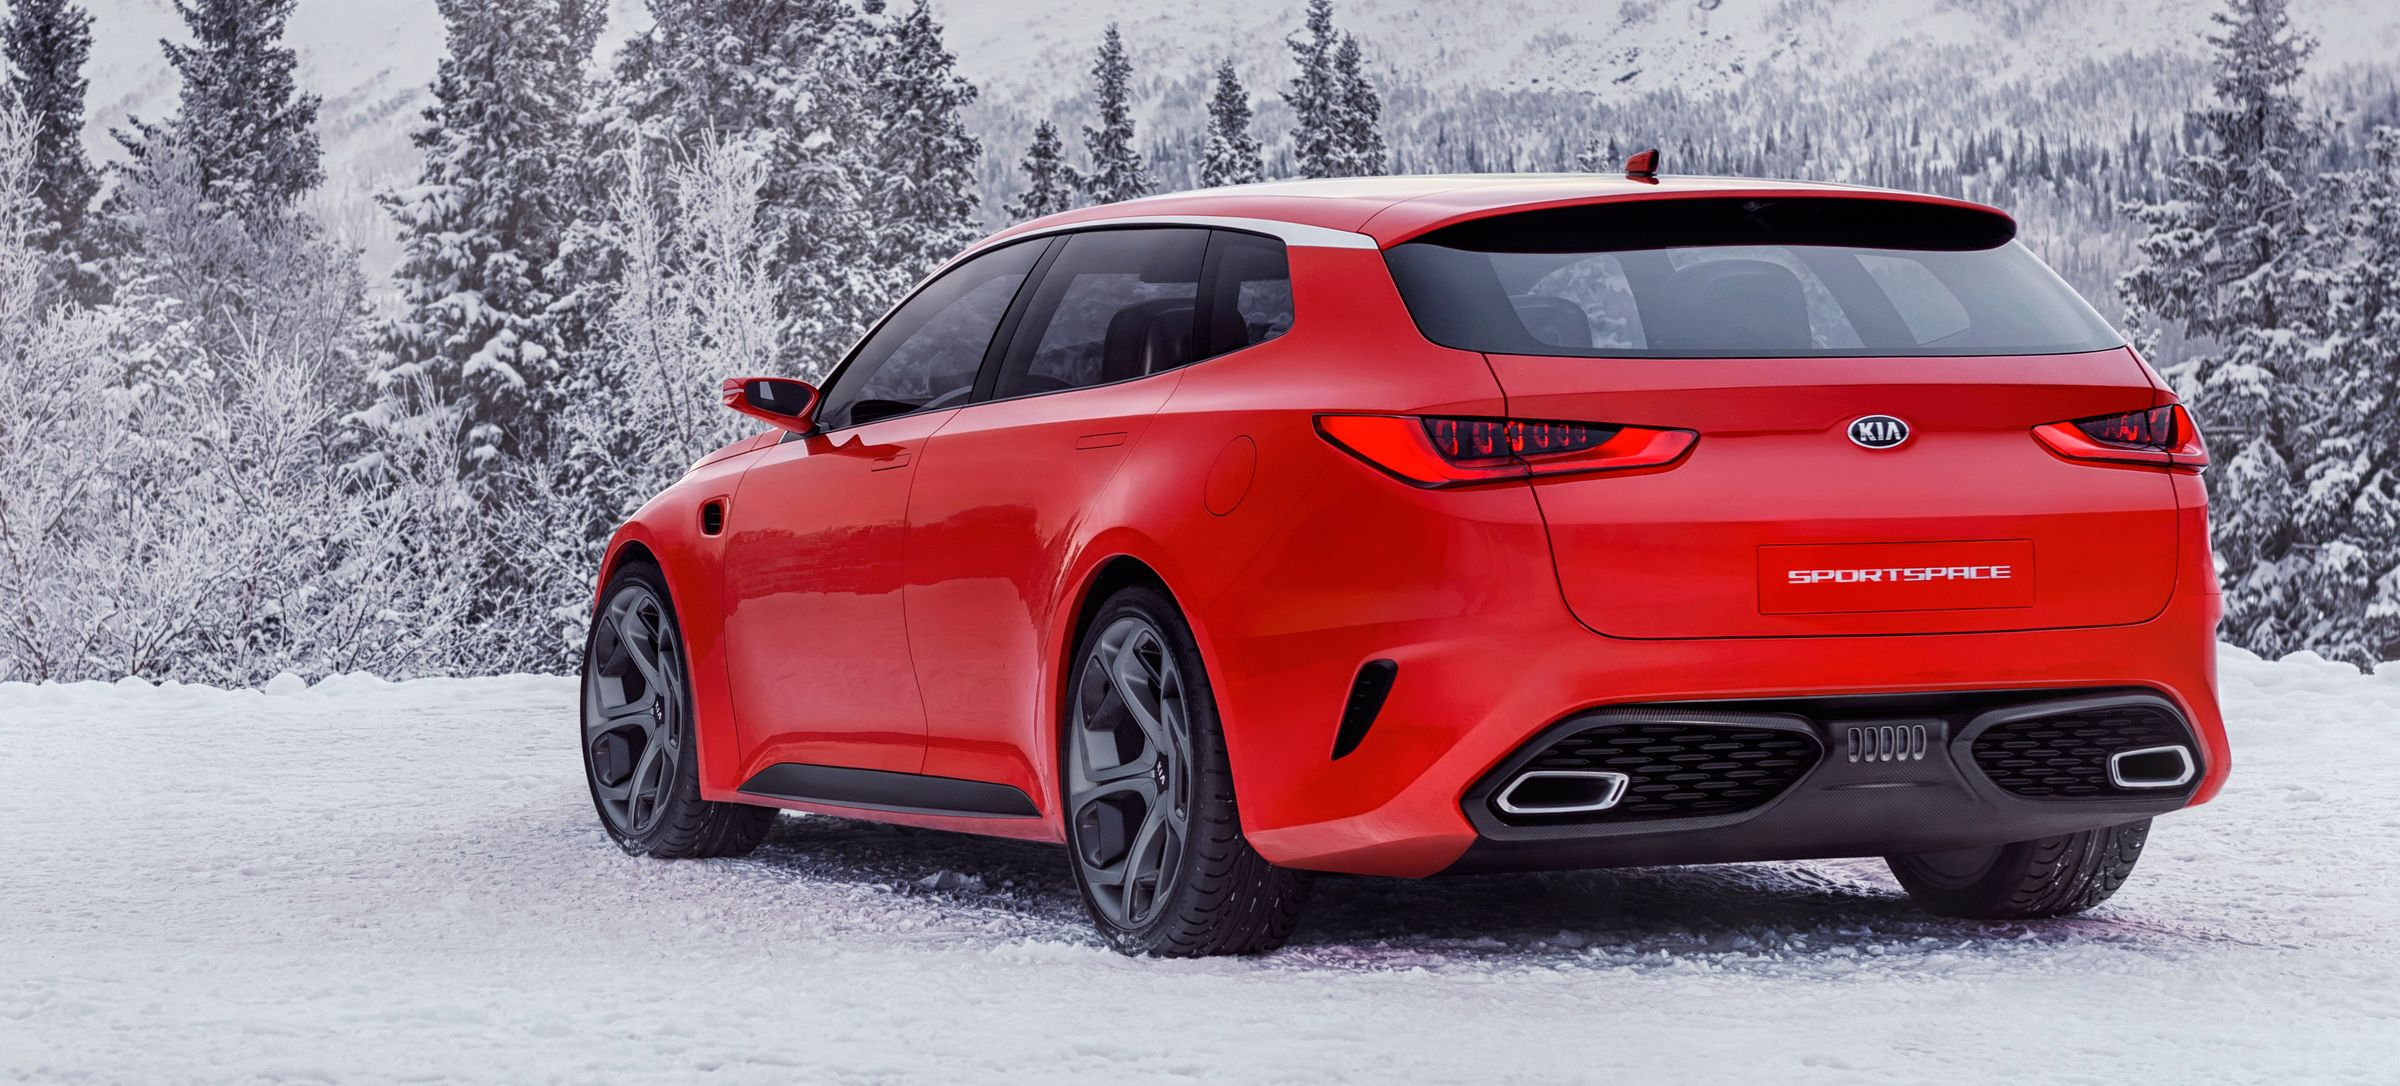 Kia S Newest Concept Car Is A Station Wagon Because Wagons Are